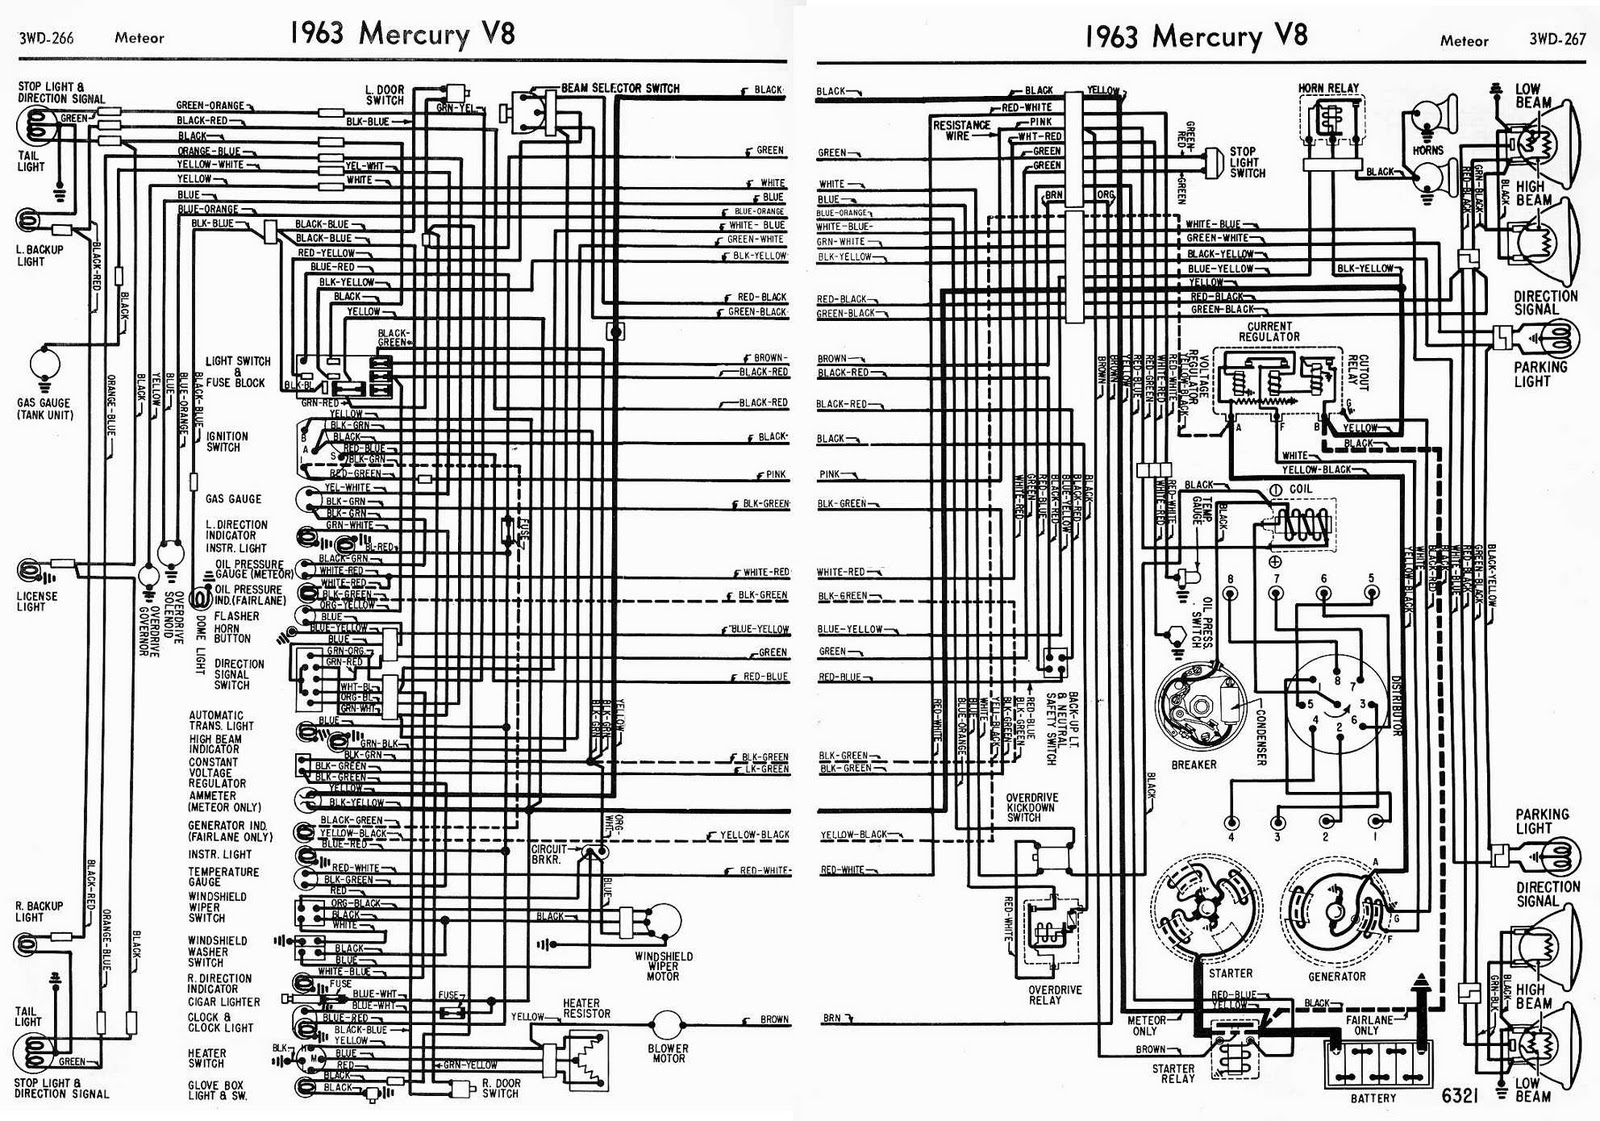 63 Ford Galaxie Wiring Diagram Diagrams 65 Schematic Electrical 1965 Mustang 1963